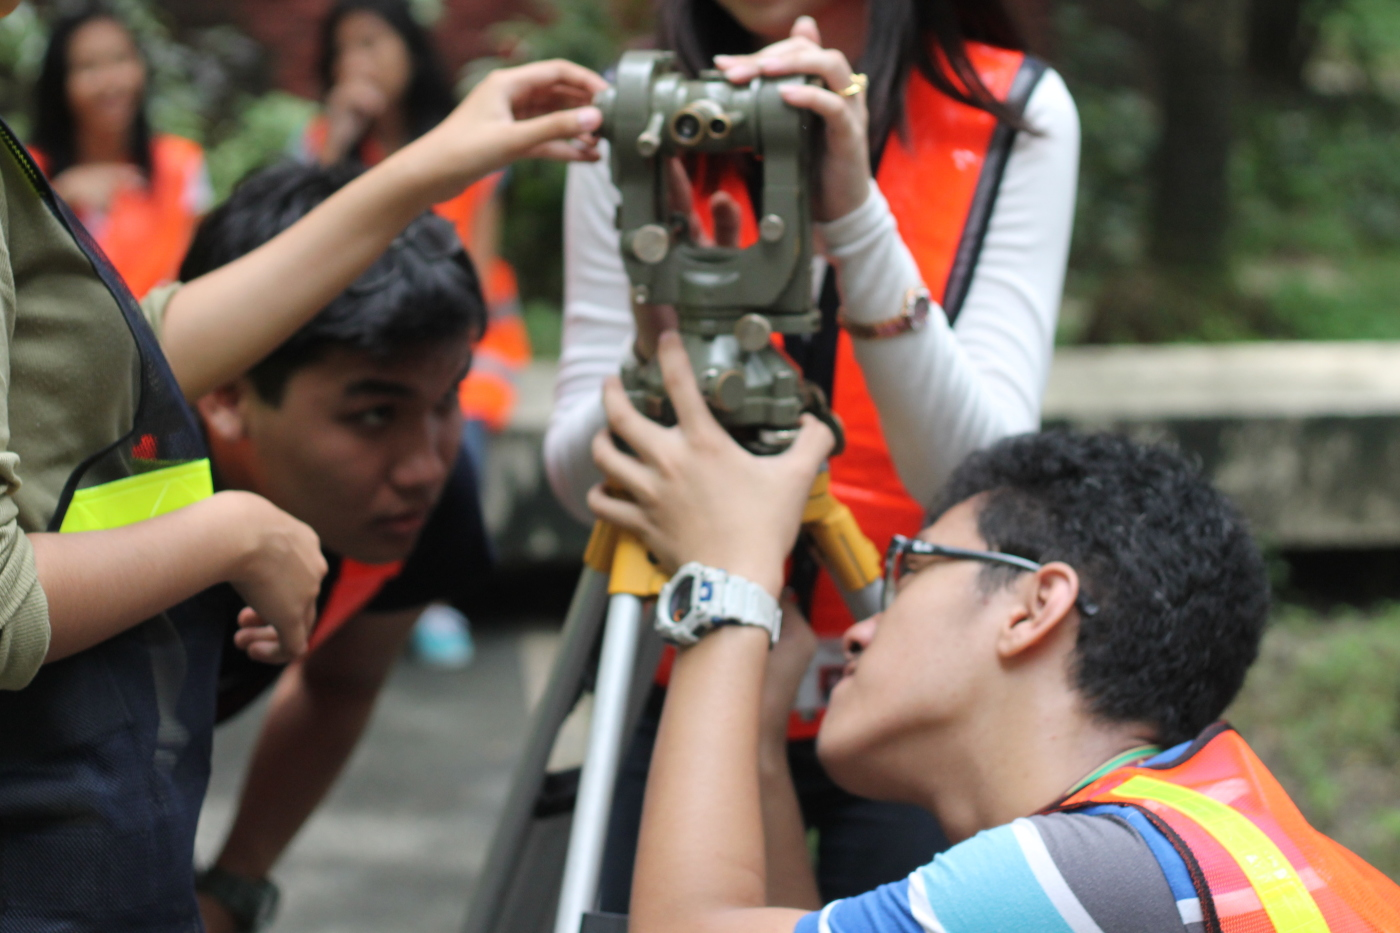 First time setting up a theodolite (2 years ago)